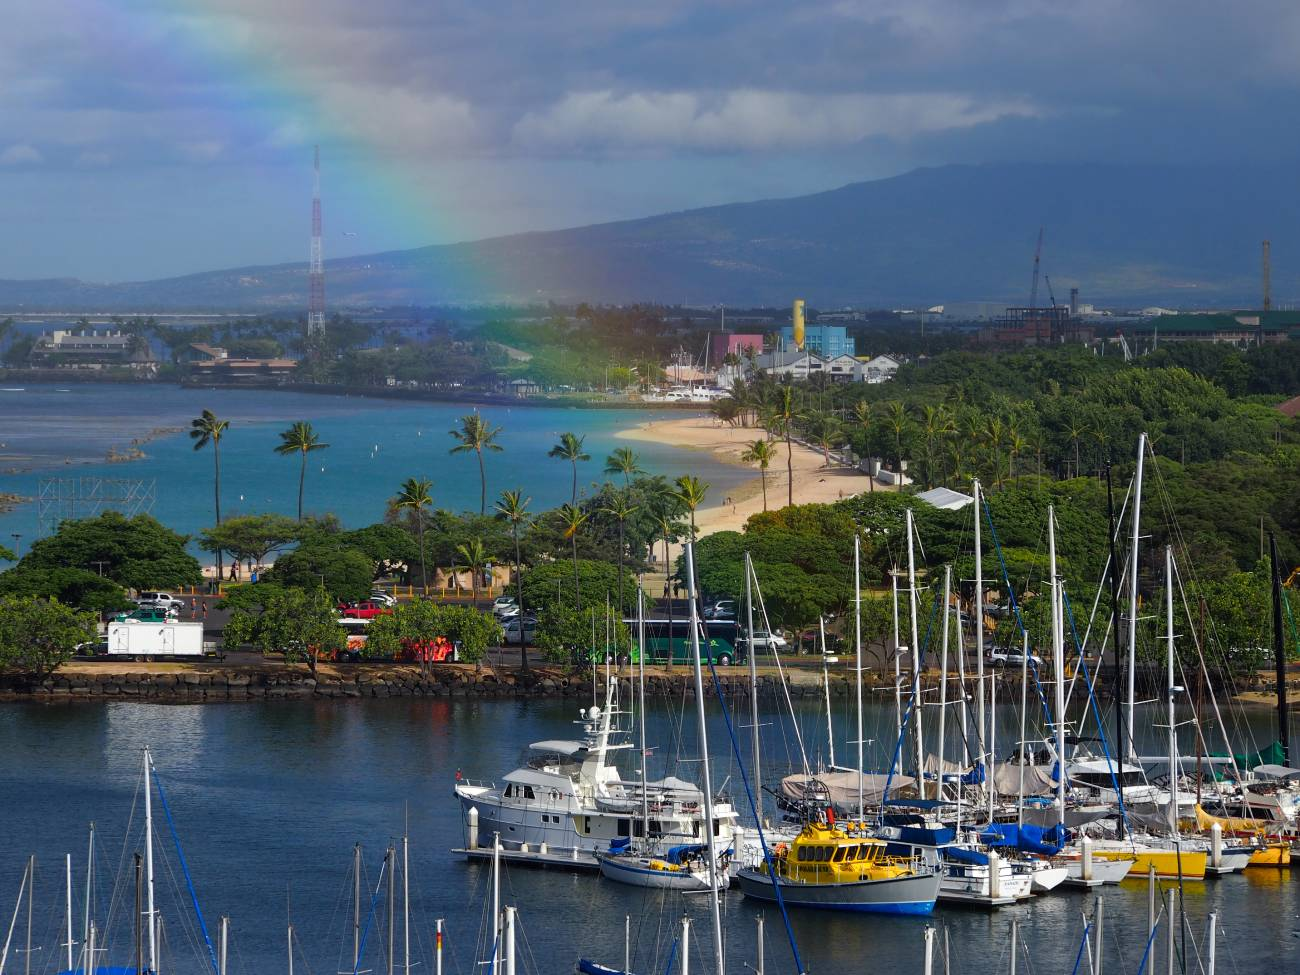 View with rainbow across boat harbour, photographed with the Olympus 40-150mm f4-5.6 R lens